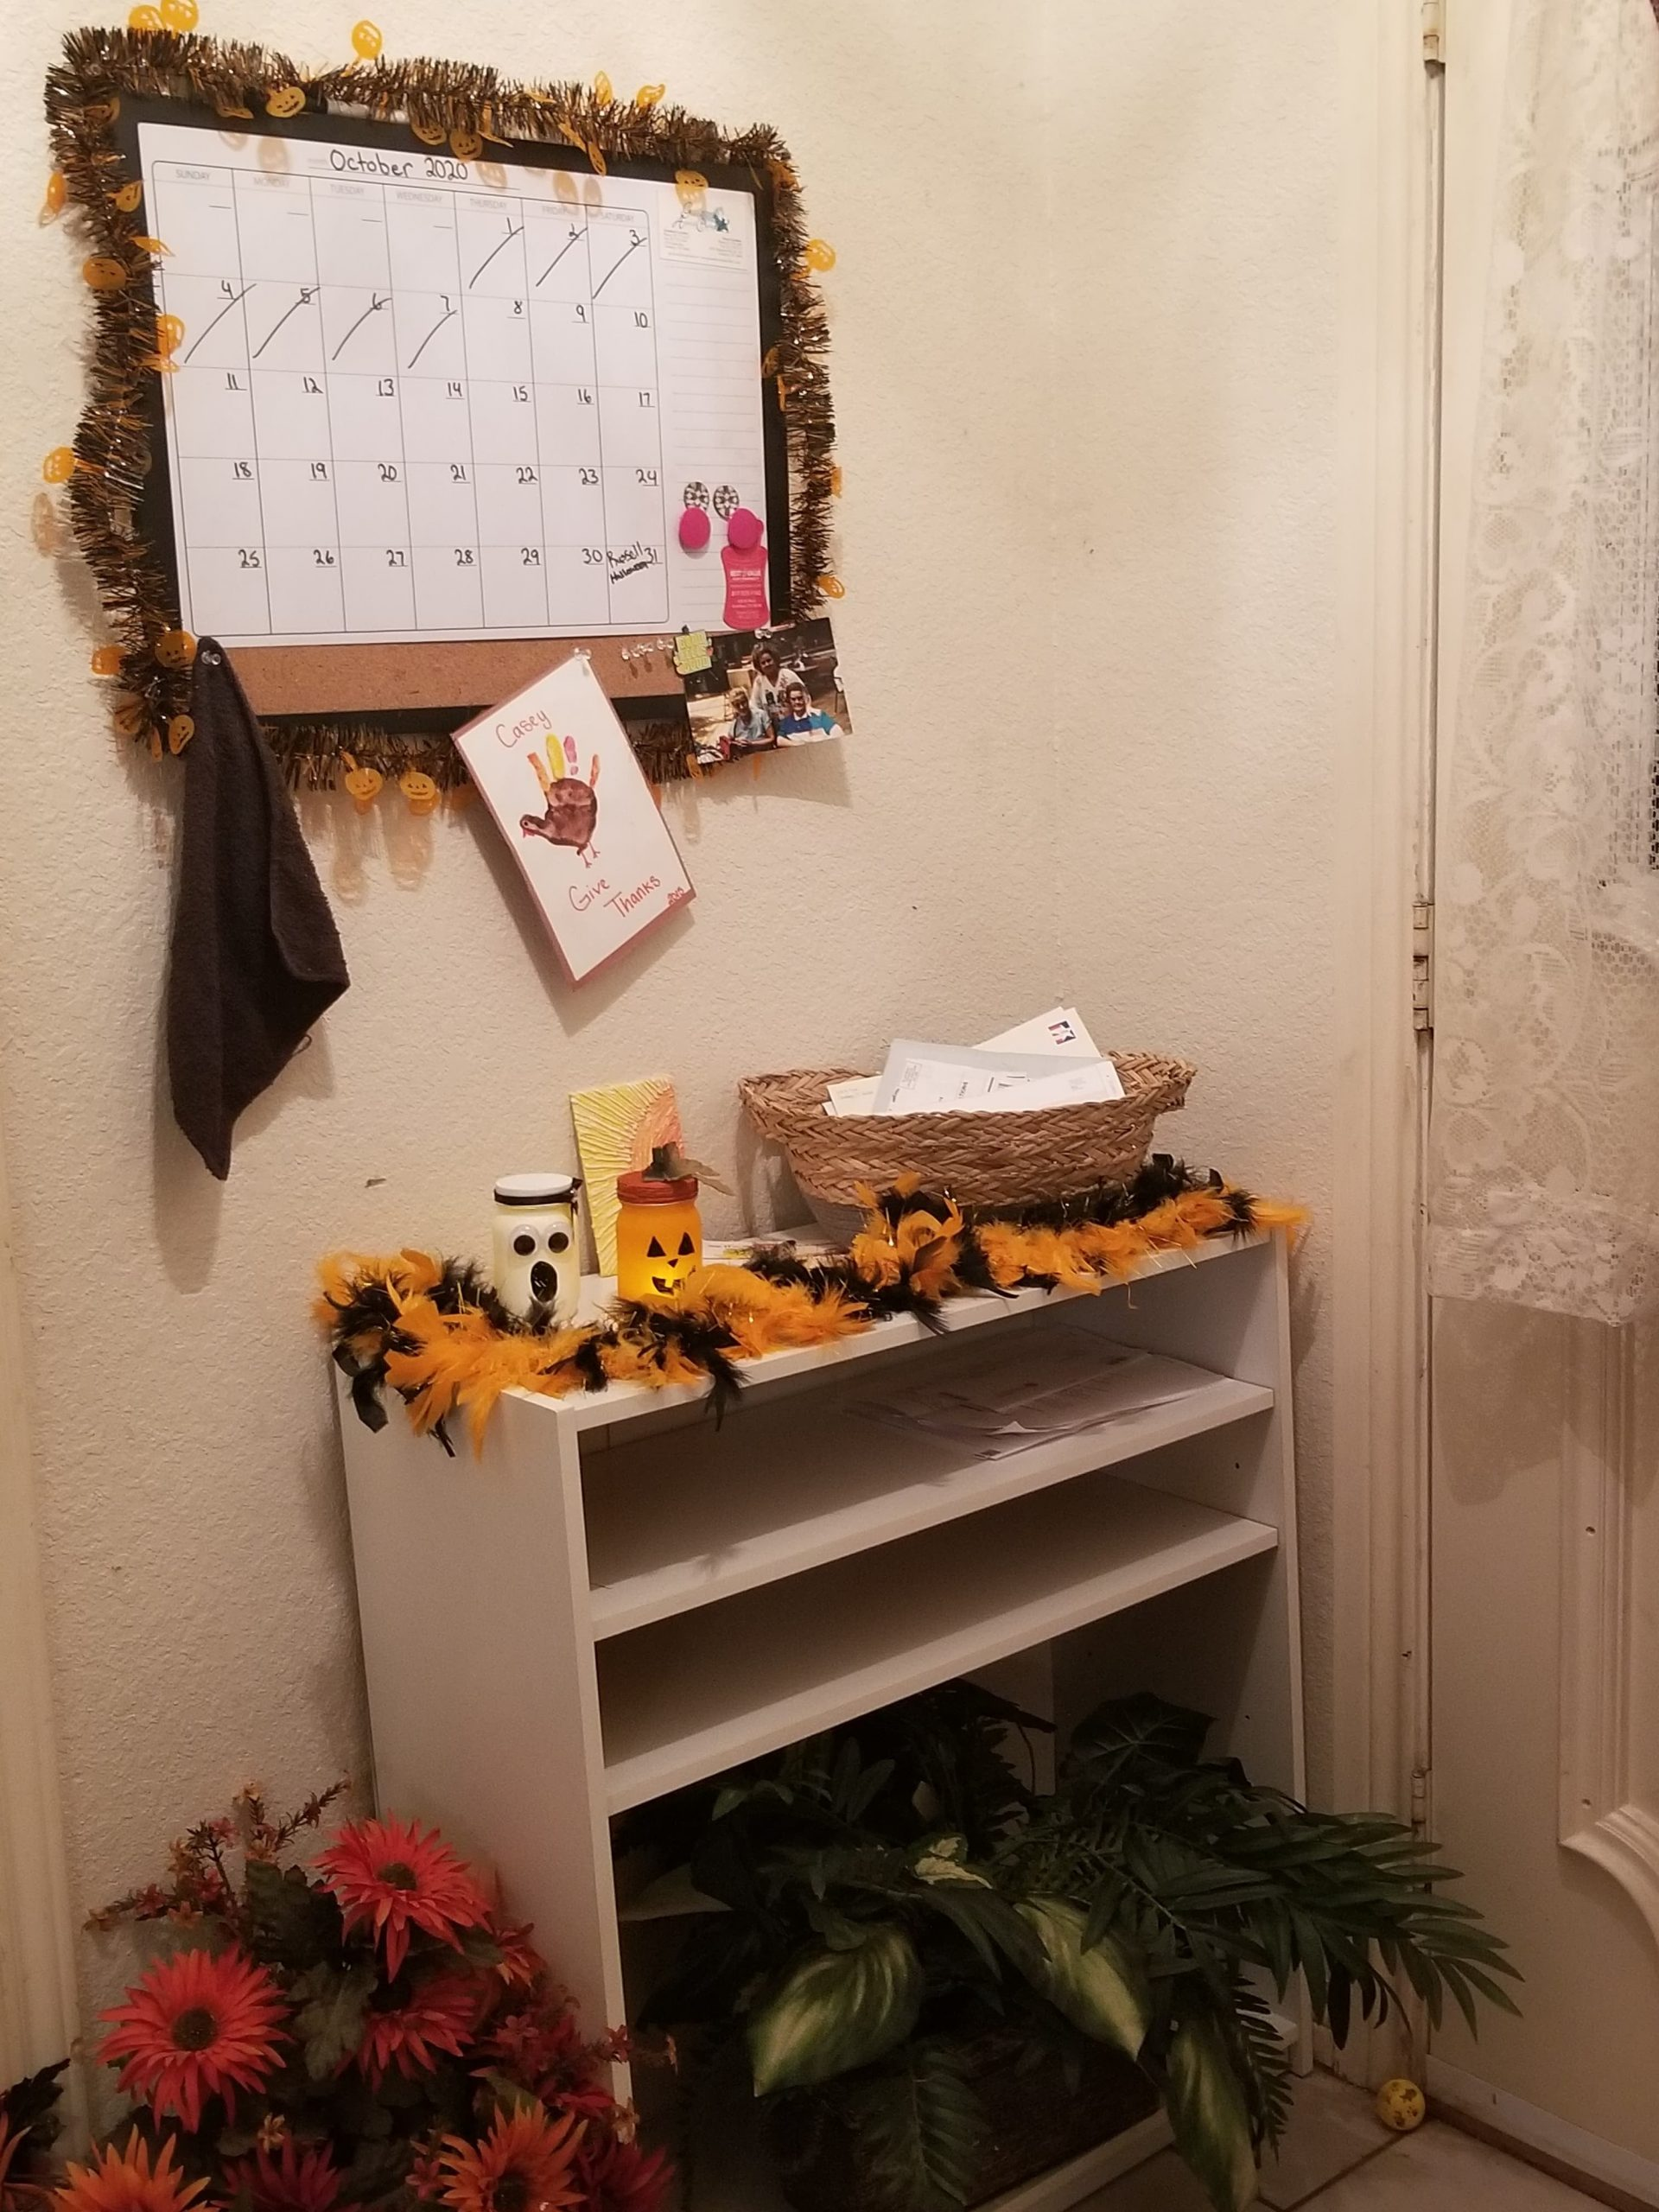 wlq5zssf1sr51 scaled - I decorated my entryway with a few Halloween crafts. - hobbies, crafts